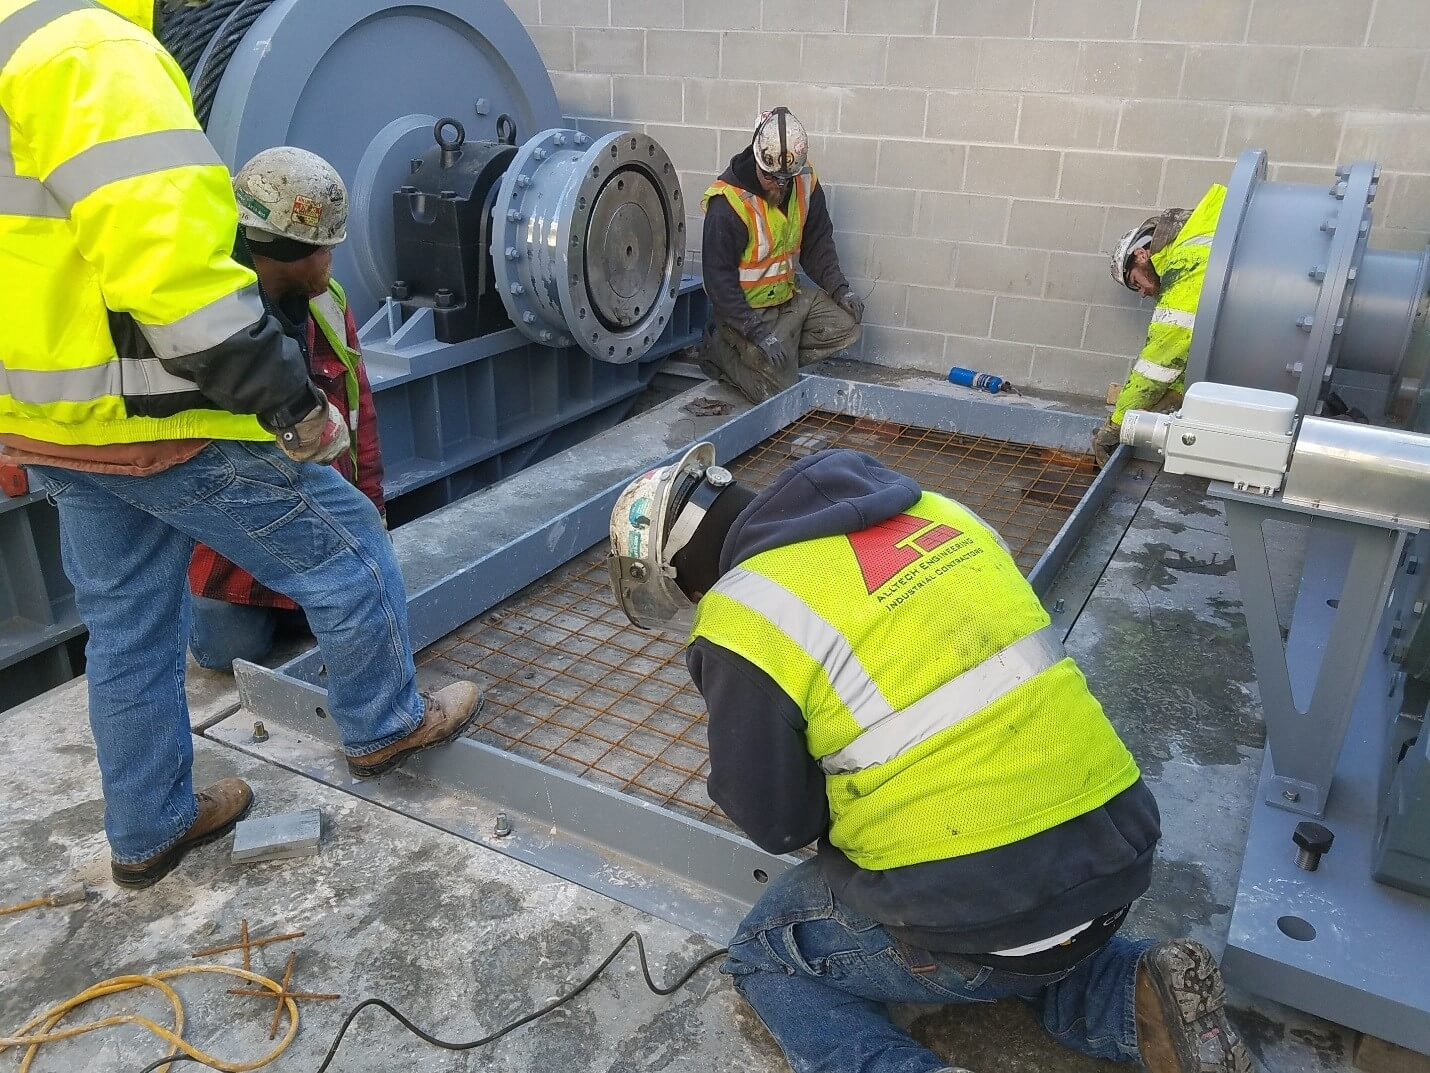 5 Men Working on Upper St. Anthony Falls Lock and Dam